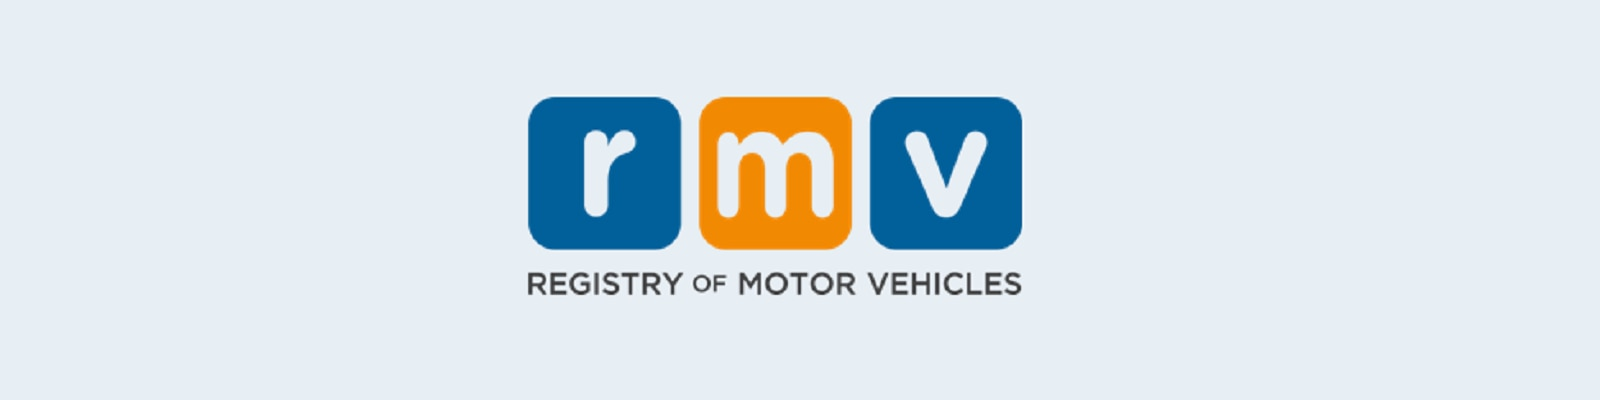 Yarmouth Registry Of Motor Vehicles Automotivegarage Org